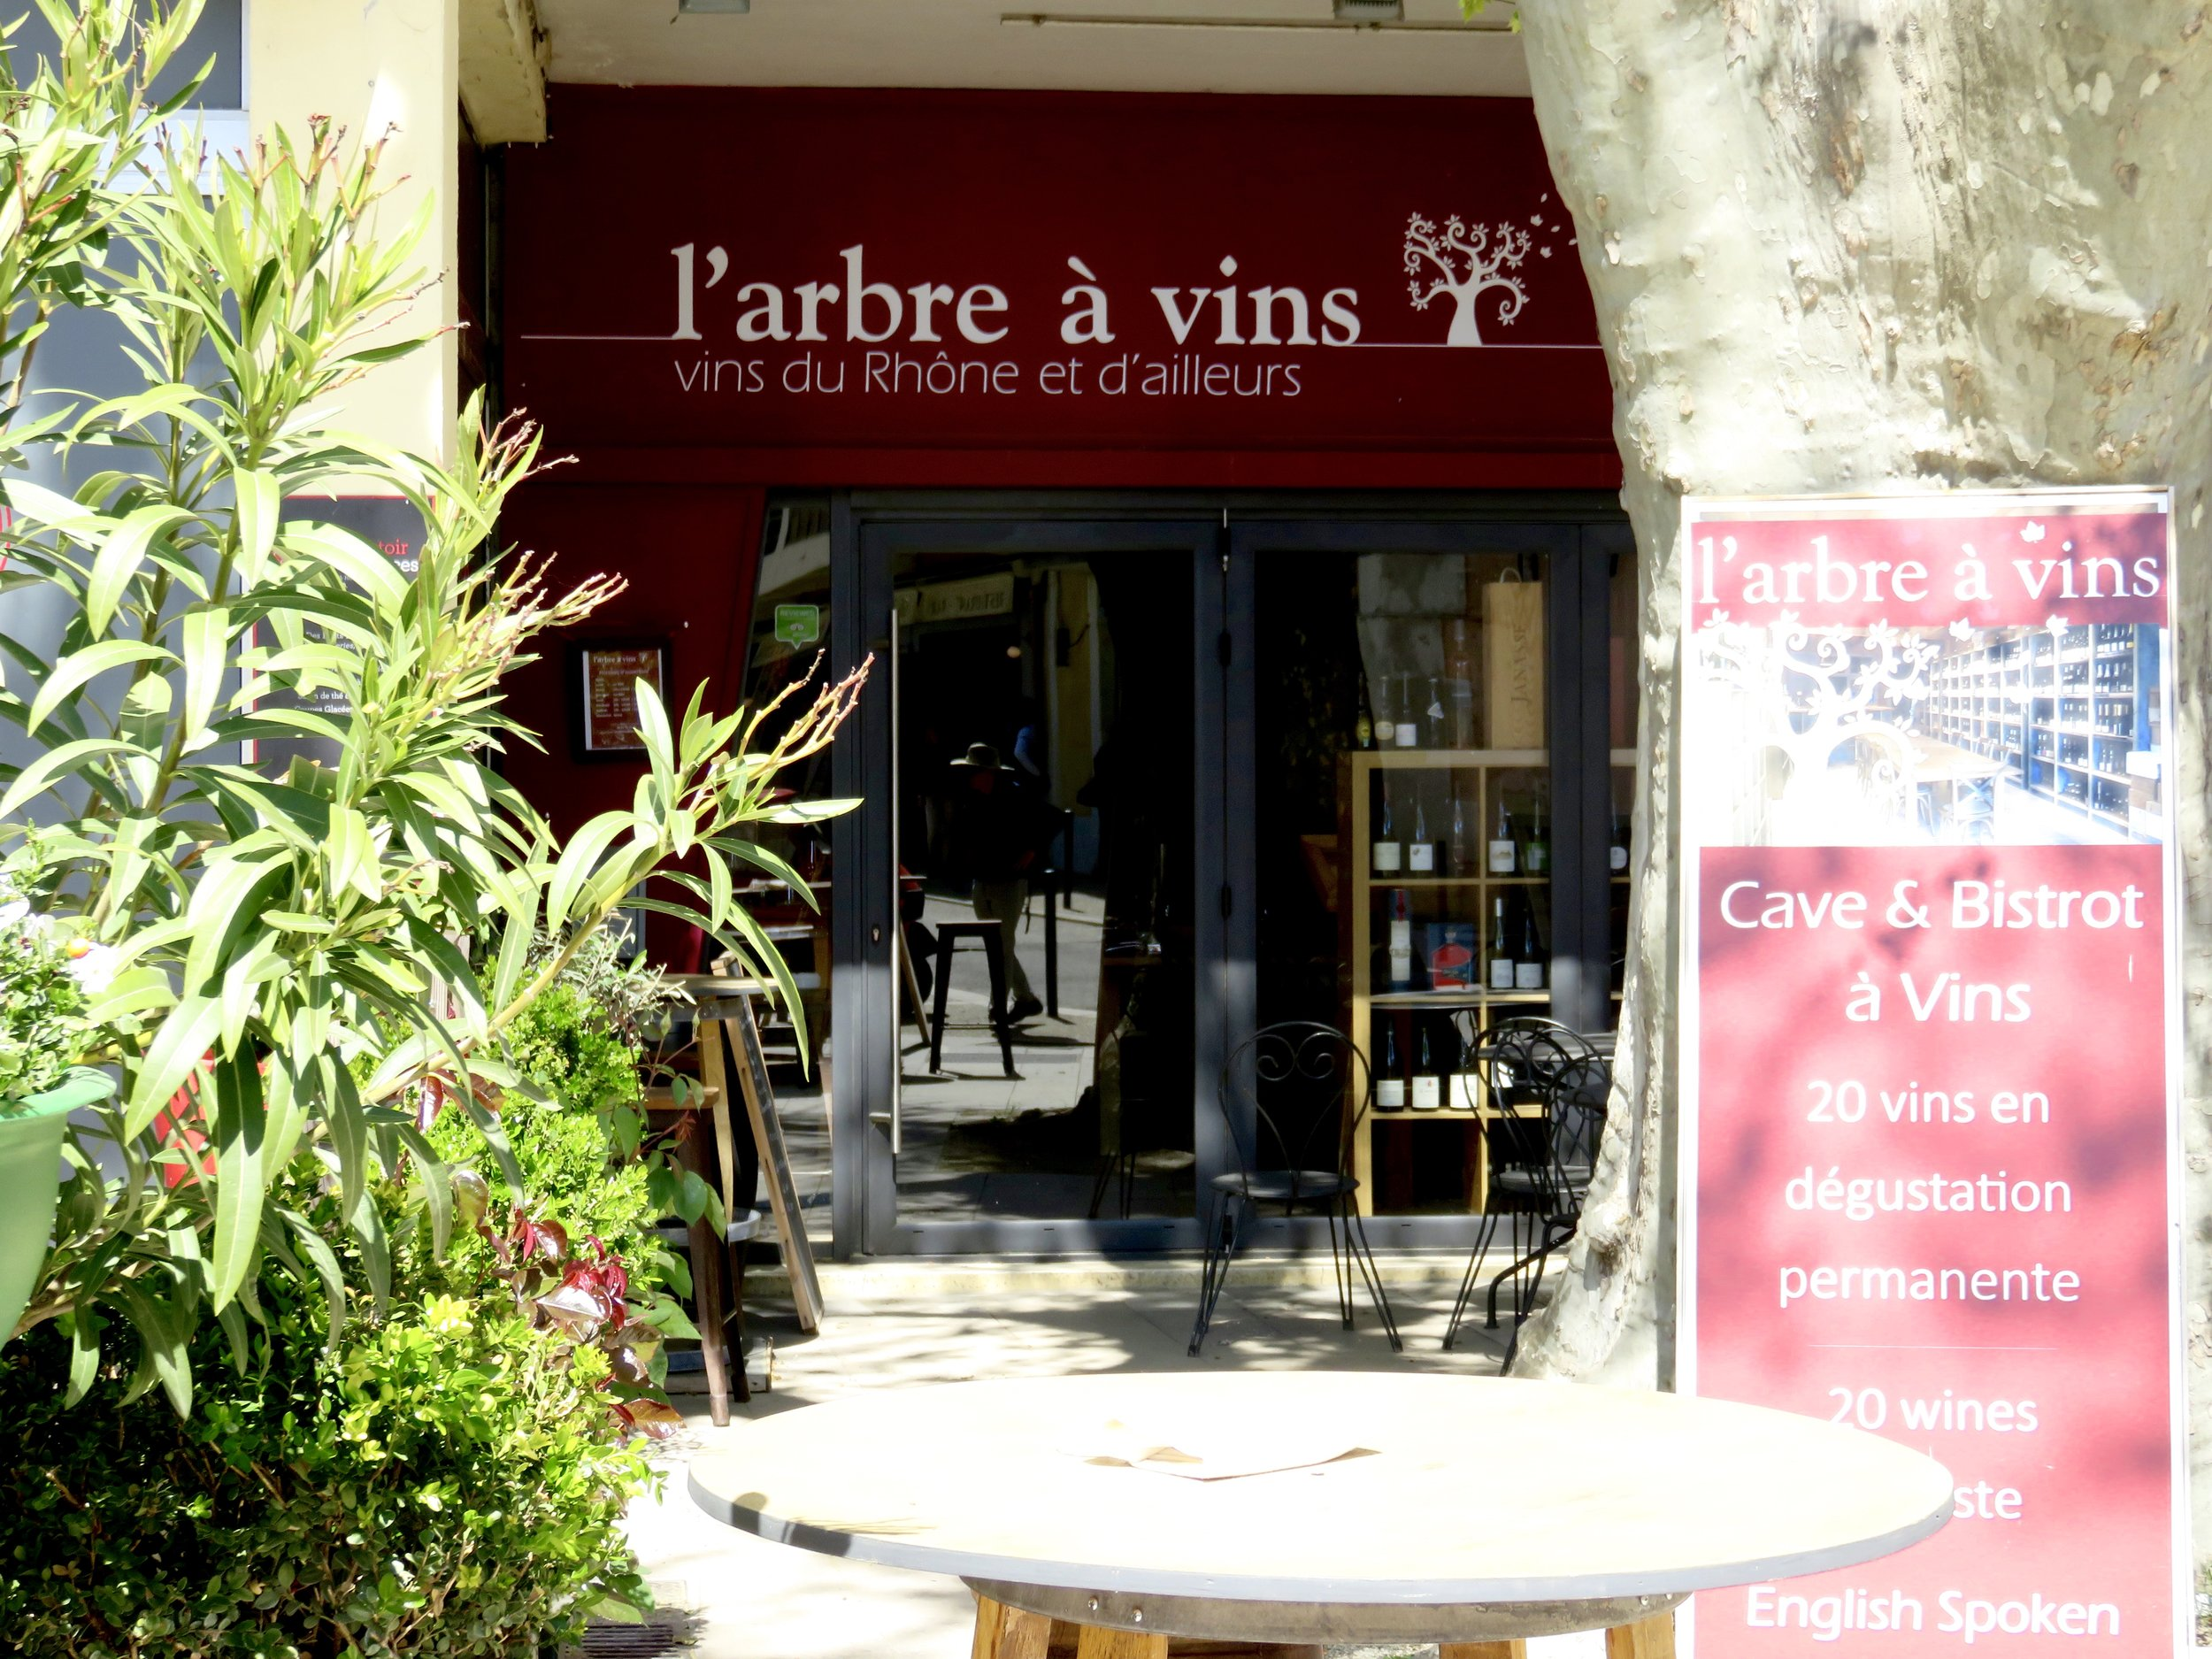 Our favourite wine bar!